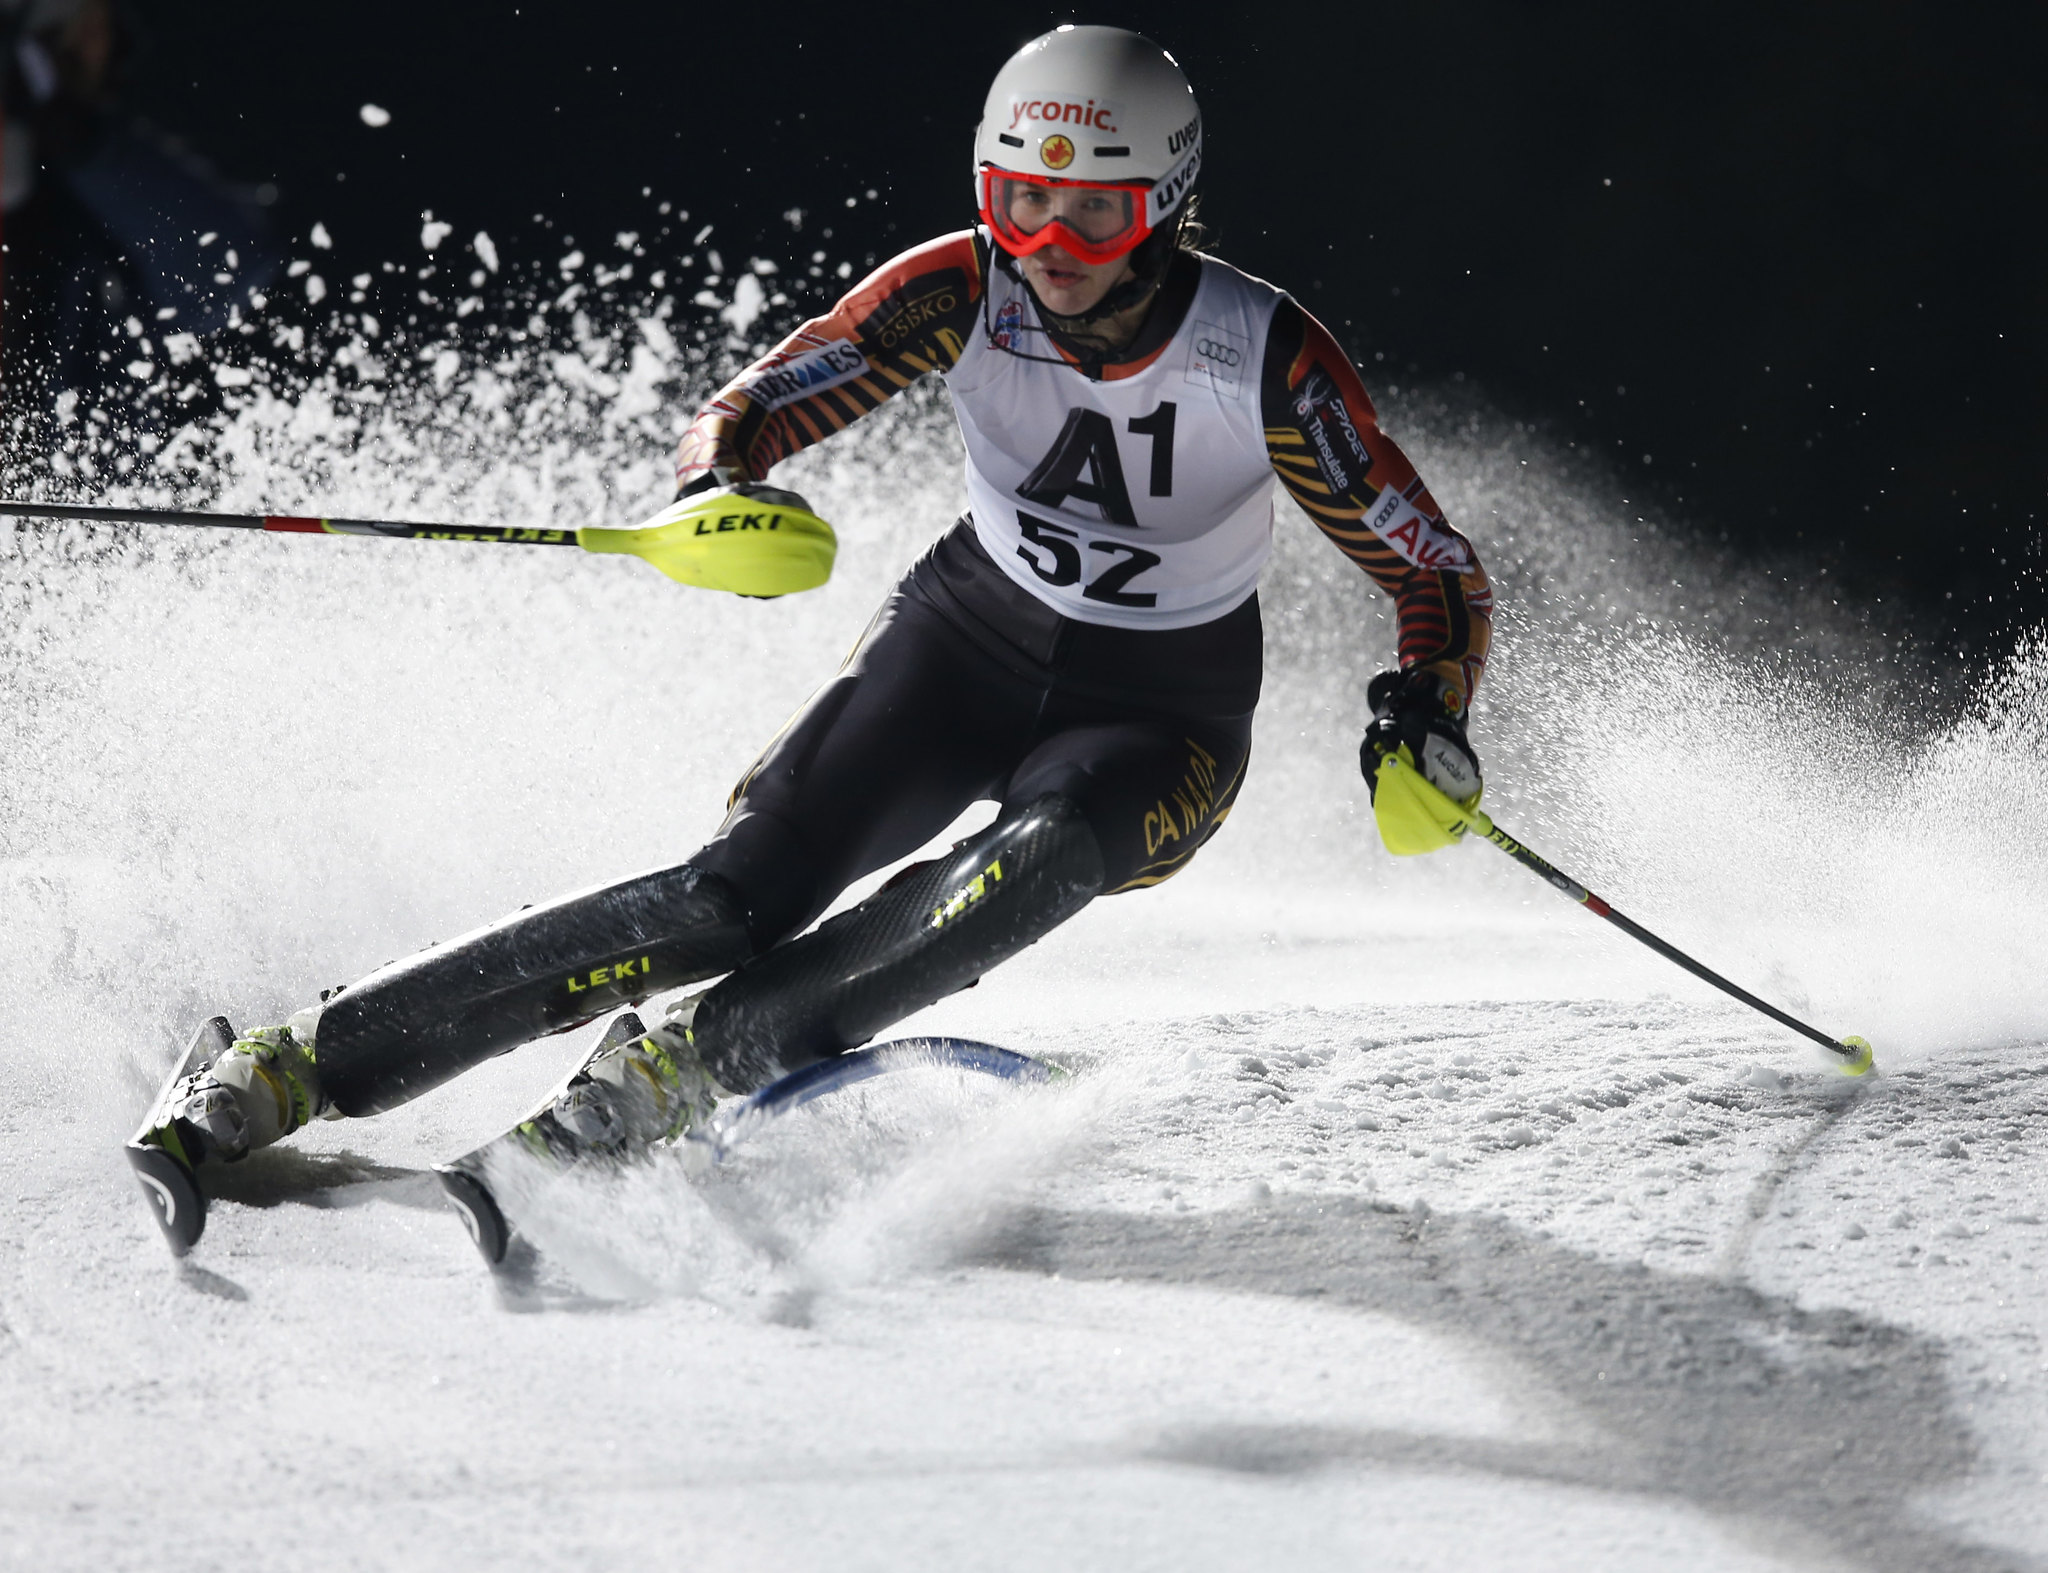 Irwin in action in Flachau, AUT during the slalom